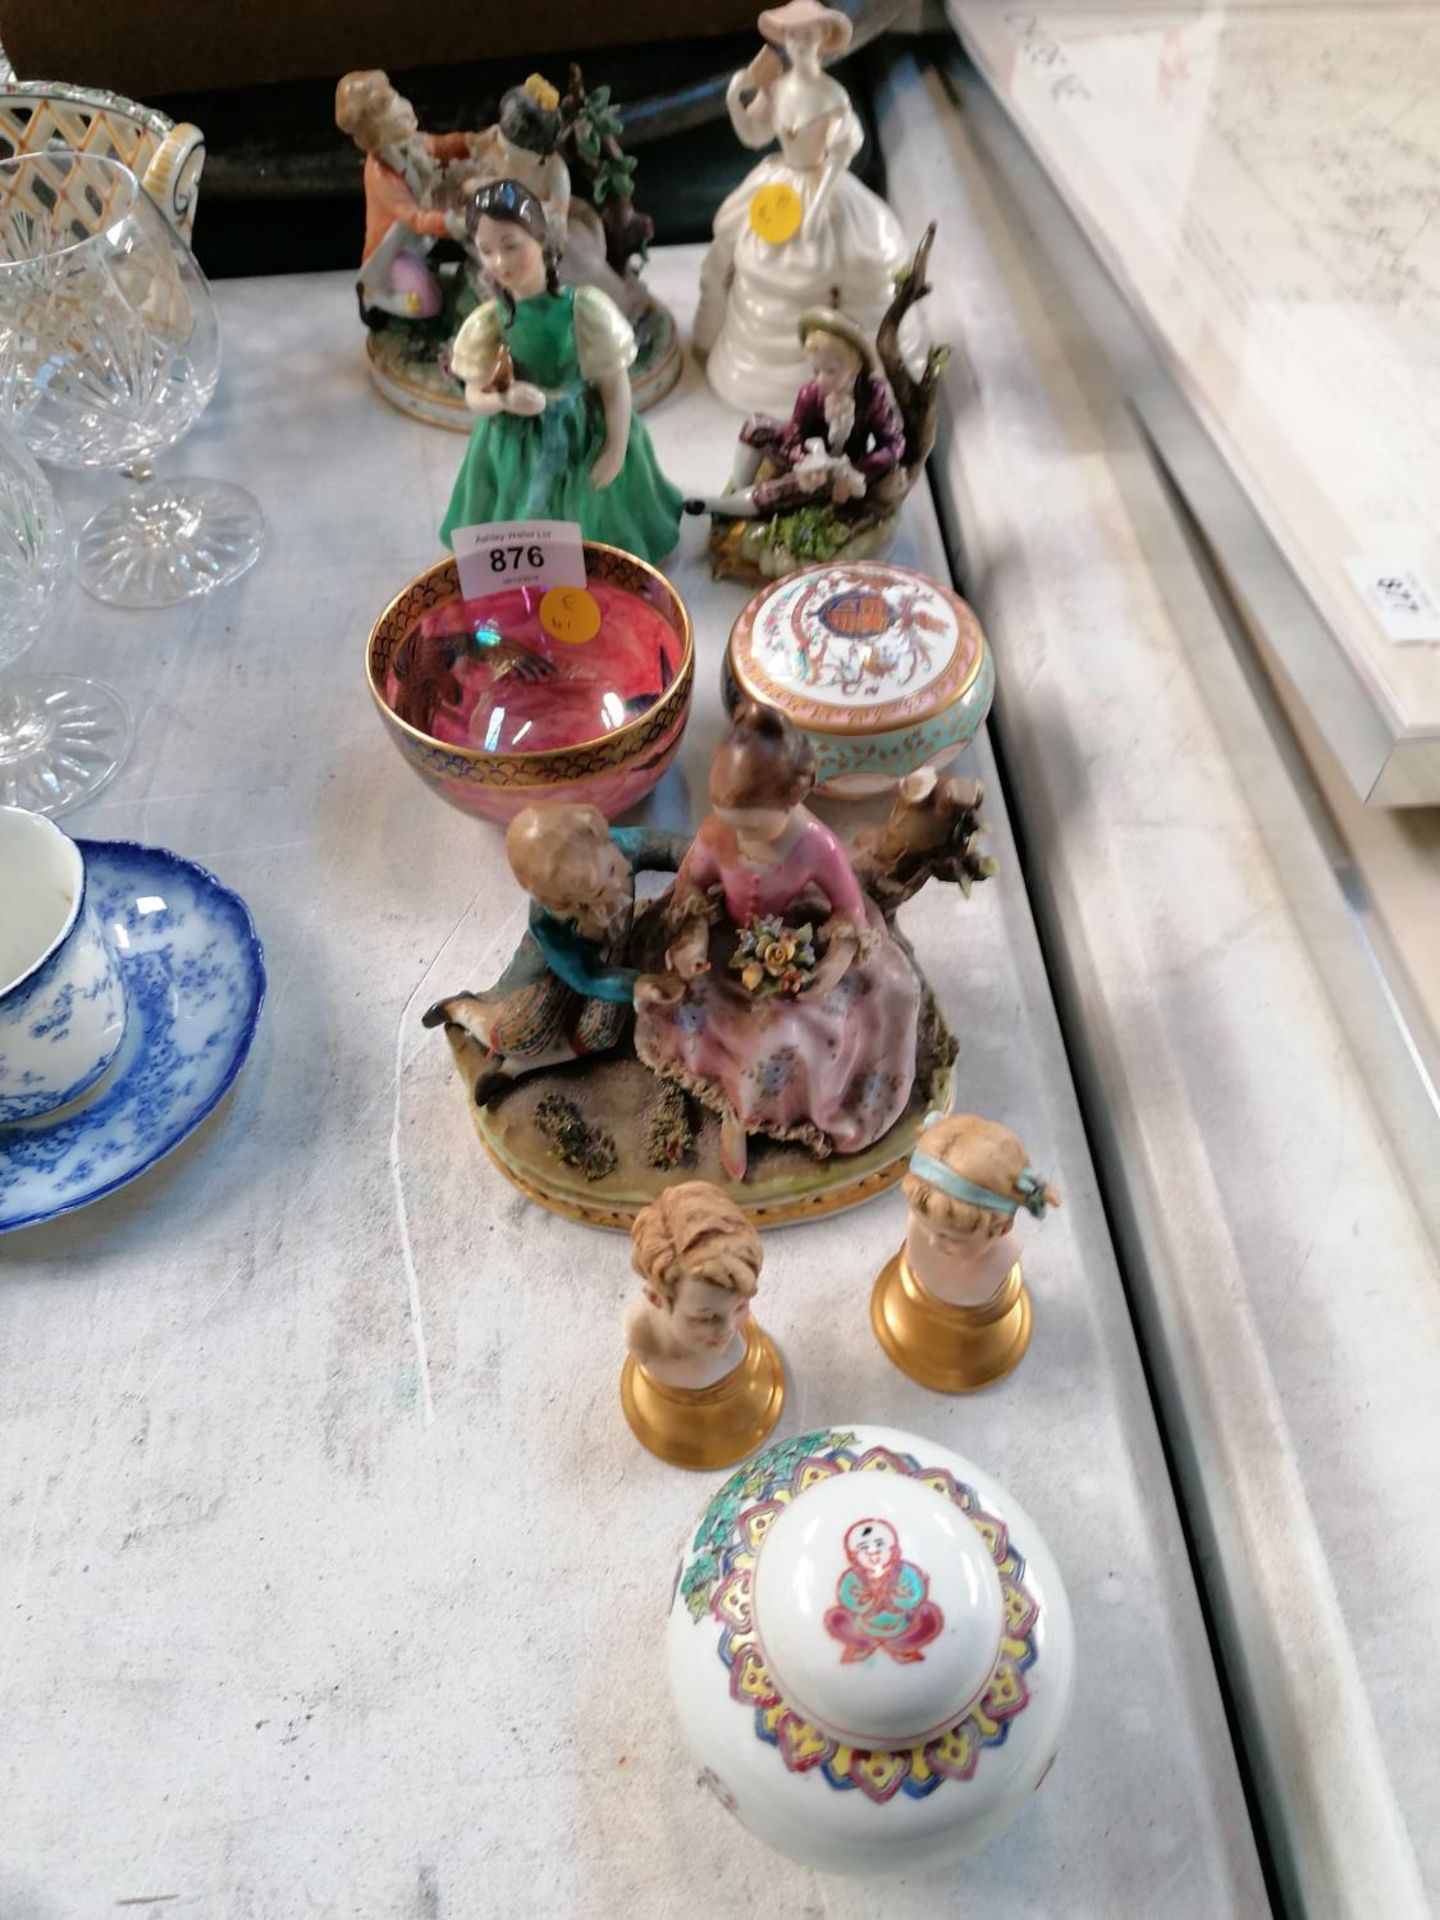 Lot 876 - MIXED ITEMS - ROYAL DOULTON SMALL LADY, MALING LUSTRE BOWL, CAPODIMONTE ETC